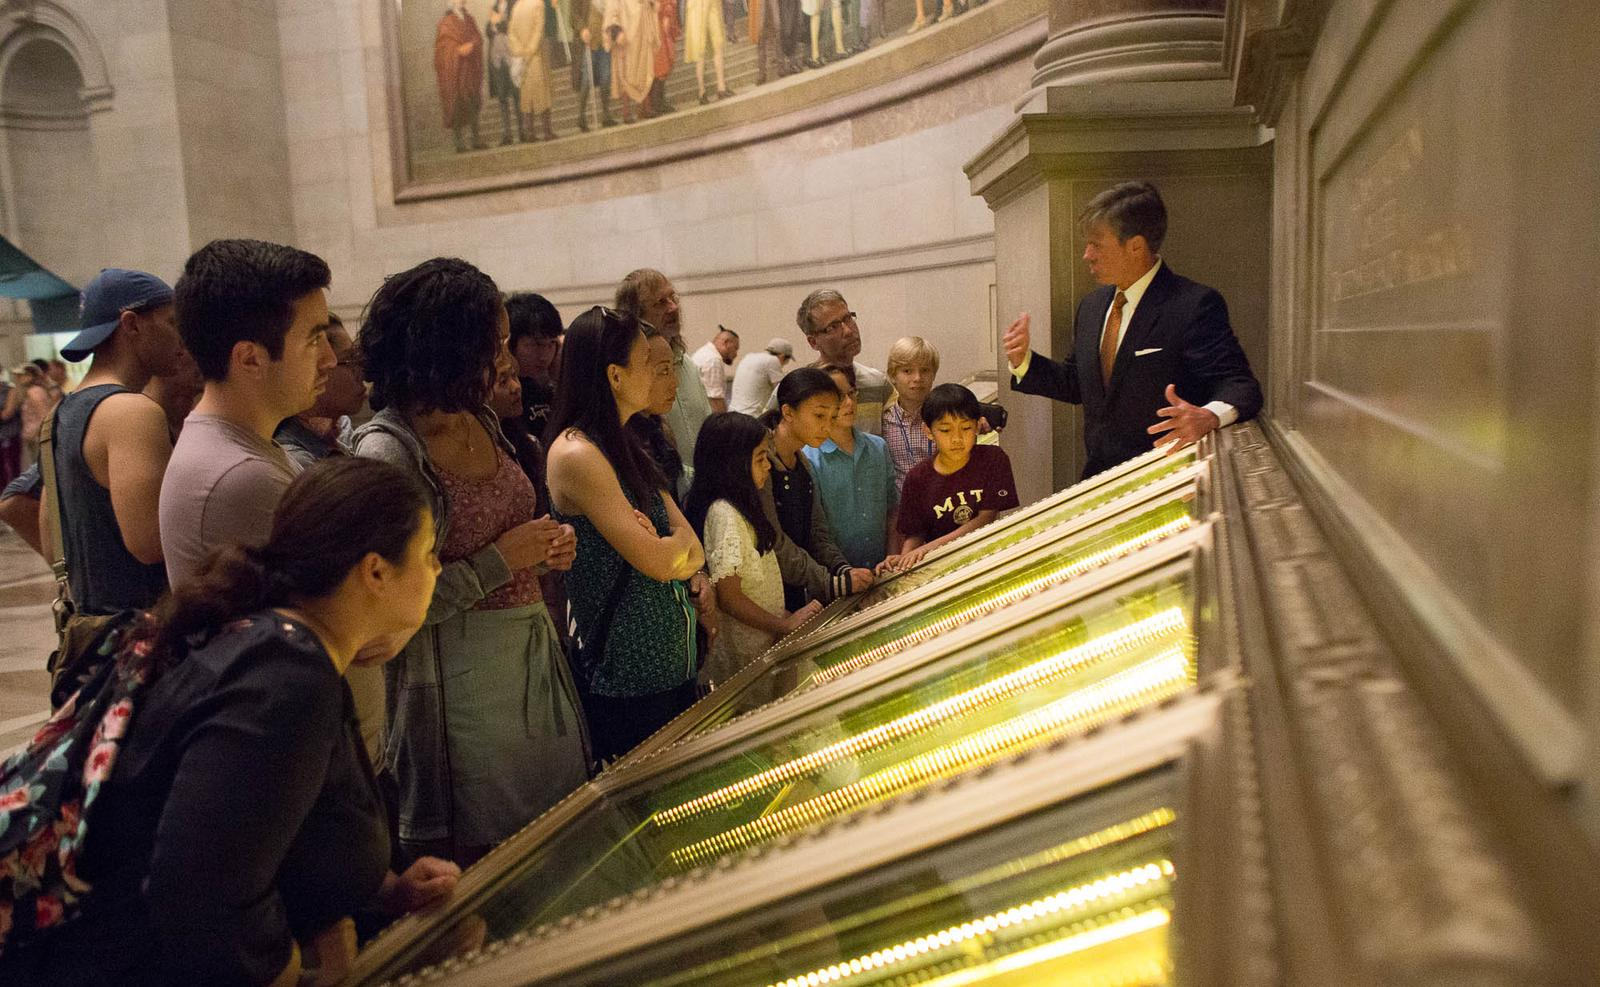 Visitors viewing the U.S. Constitution.